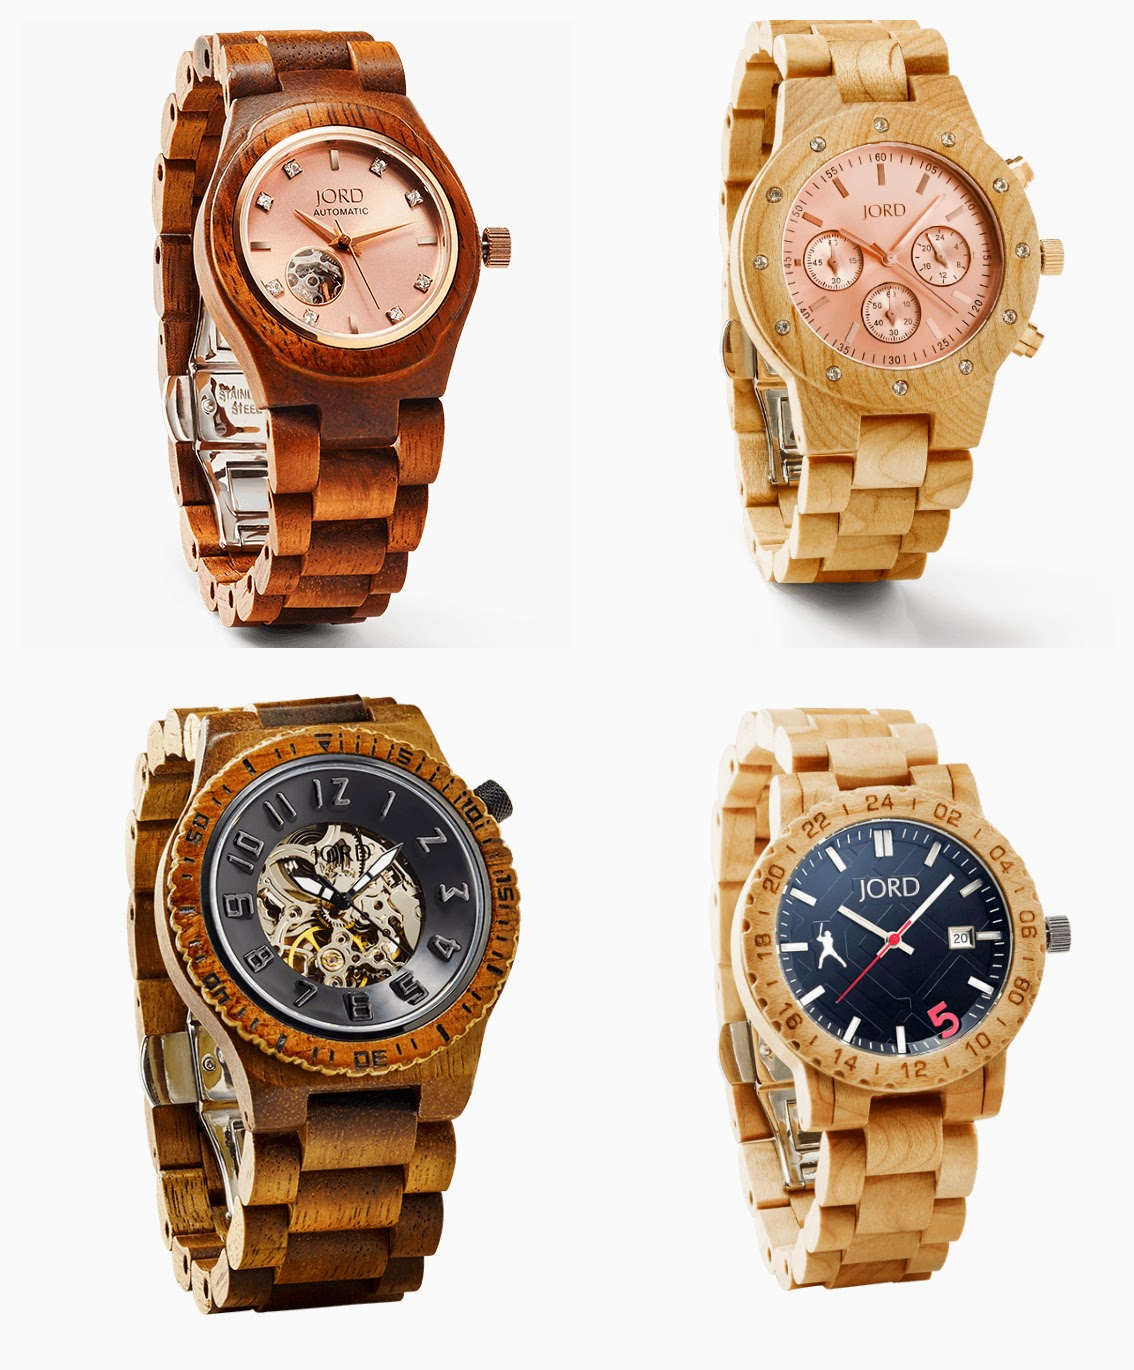 Image result for jord wood watches